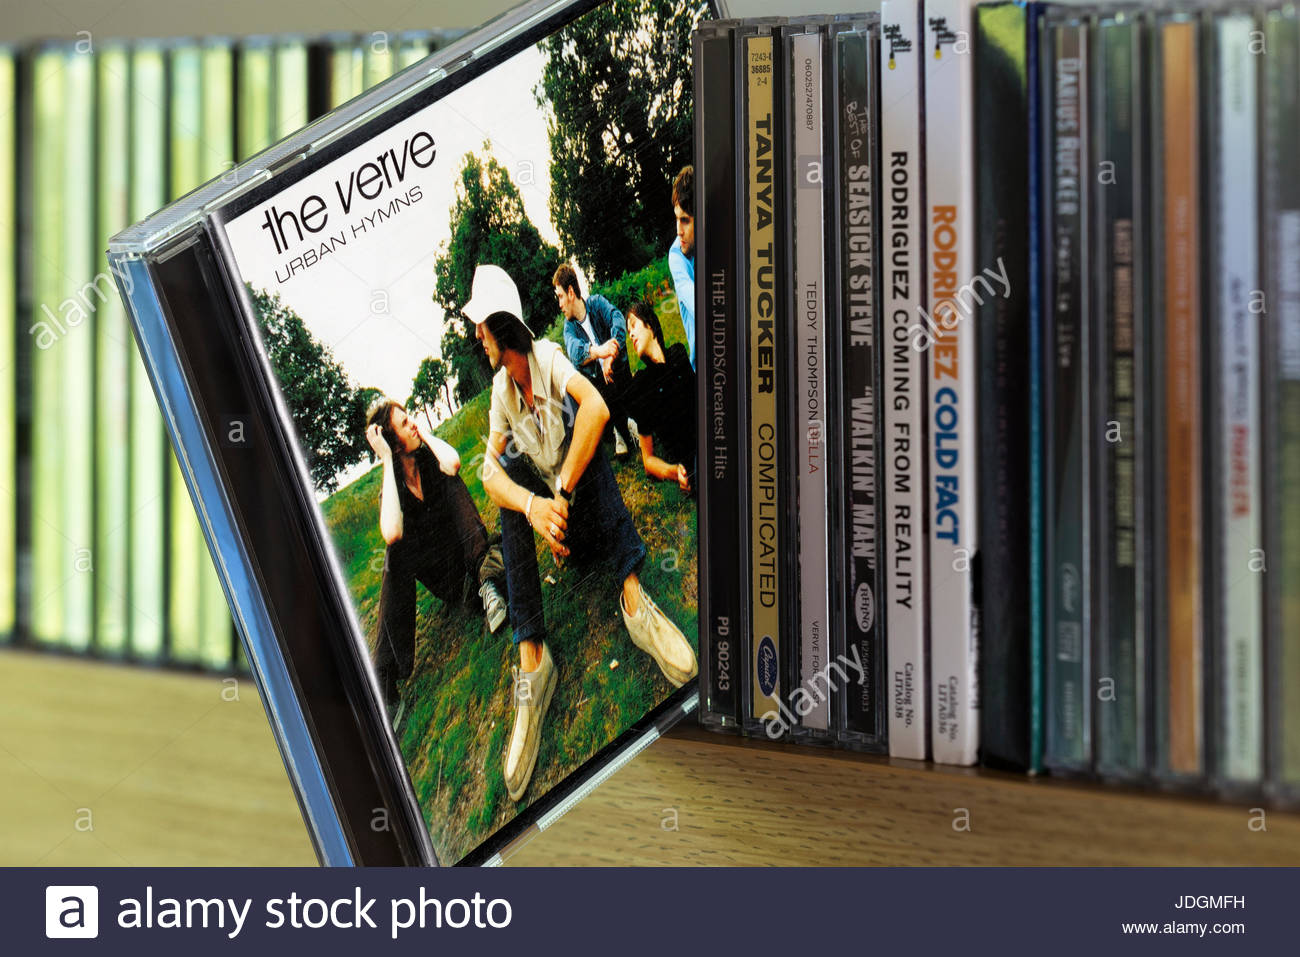 Urban Hymns, The Verve CD pulled out from among other CD's on a shelf, Dorset, England Stock Photo